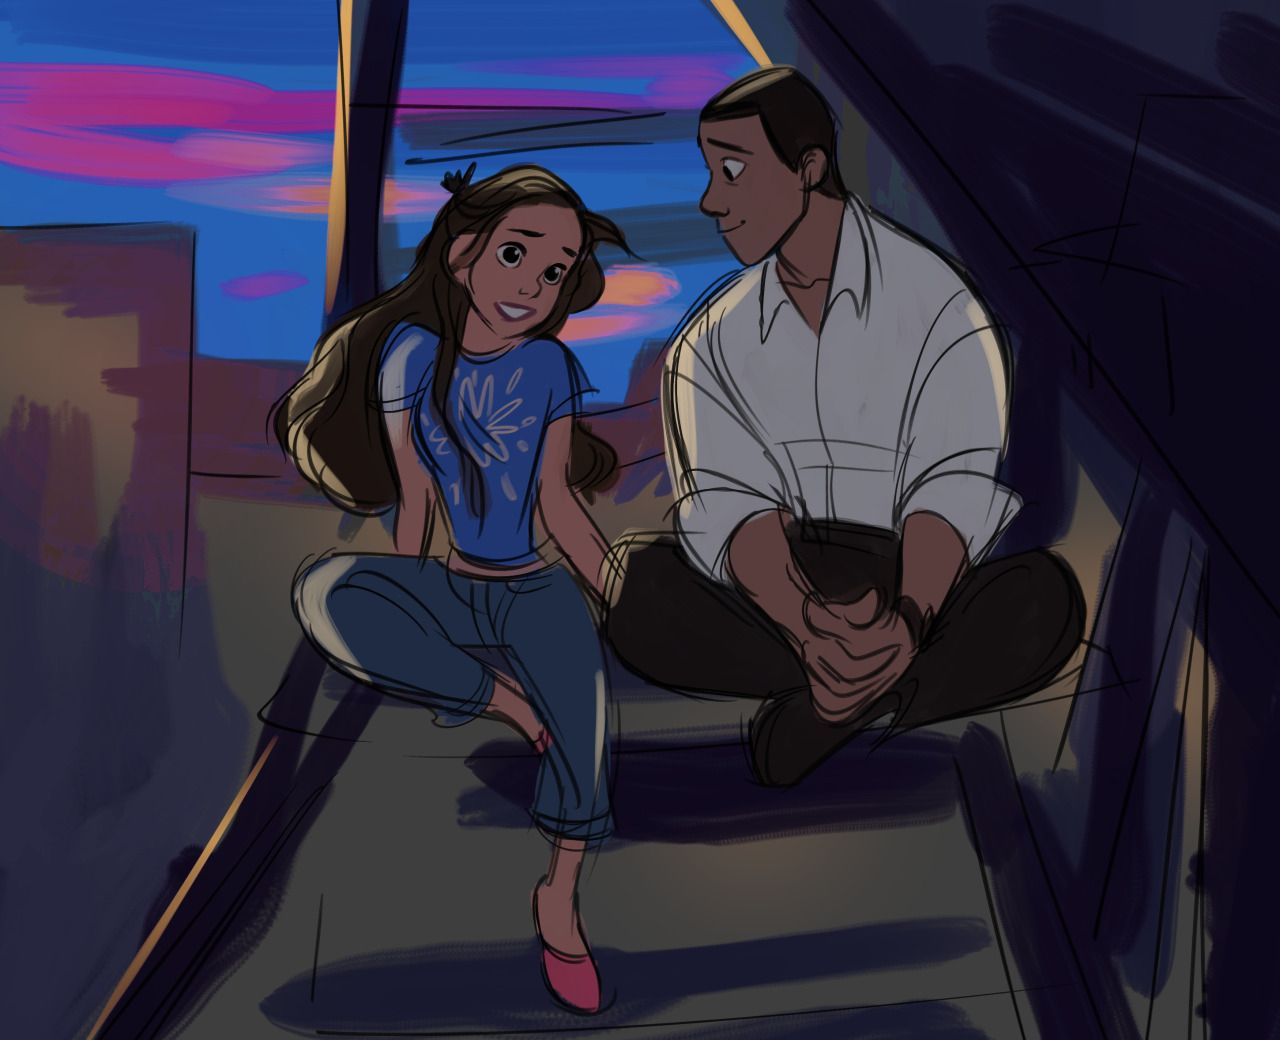 — I used to think we lived at the top of the world (Nina and Benny)